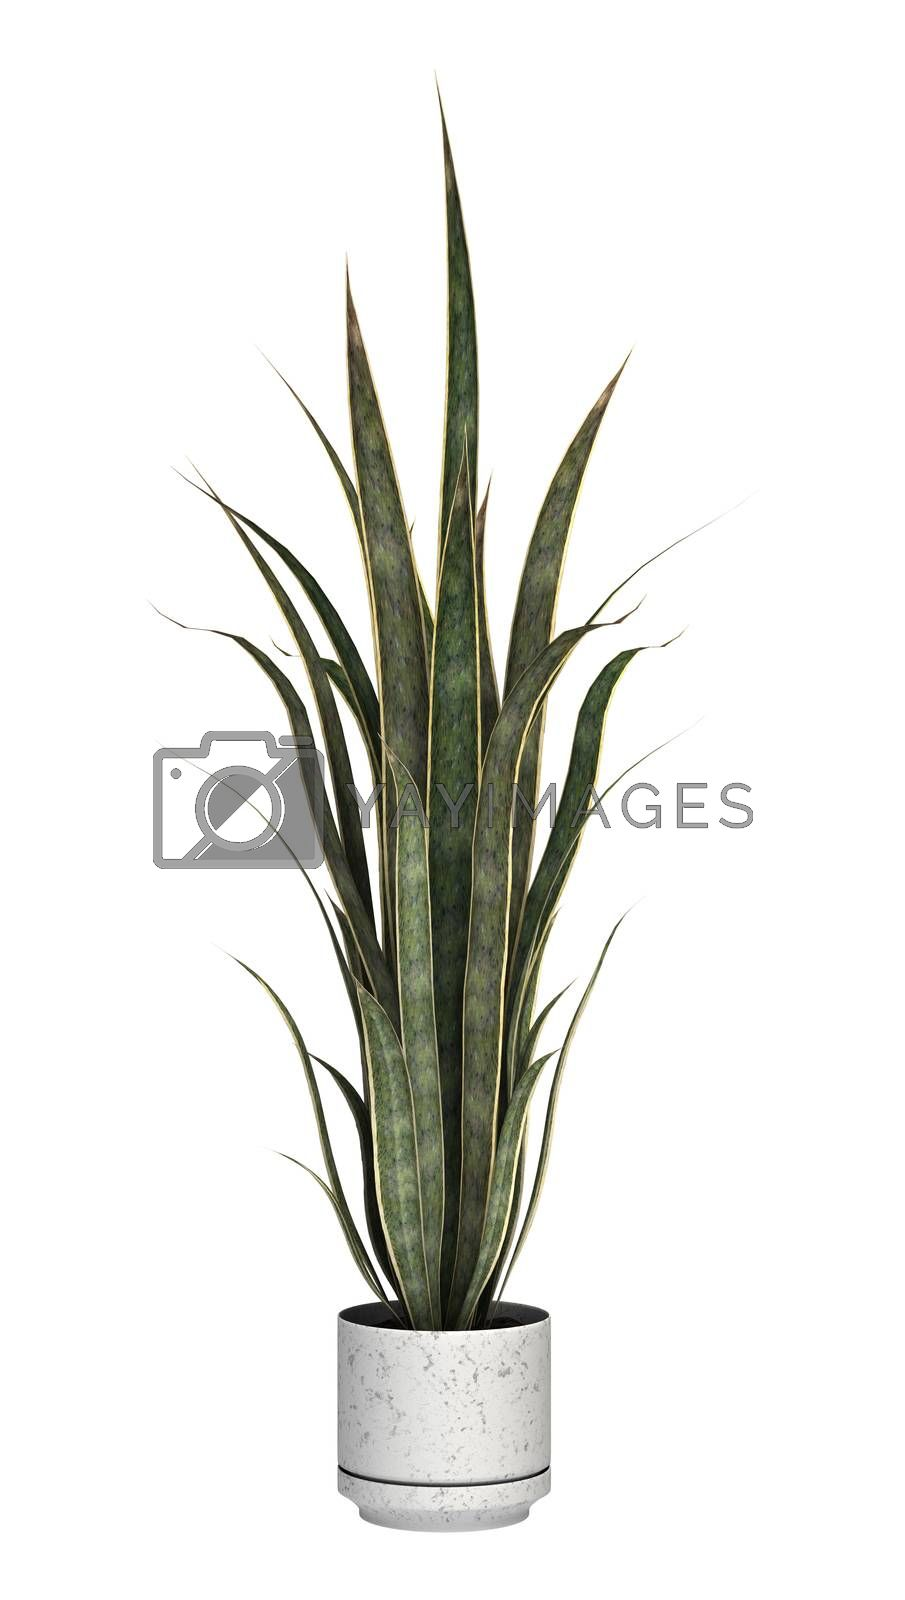 Sansevieria on White by Vac